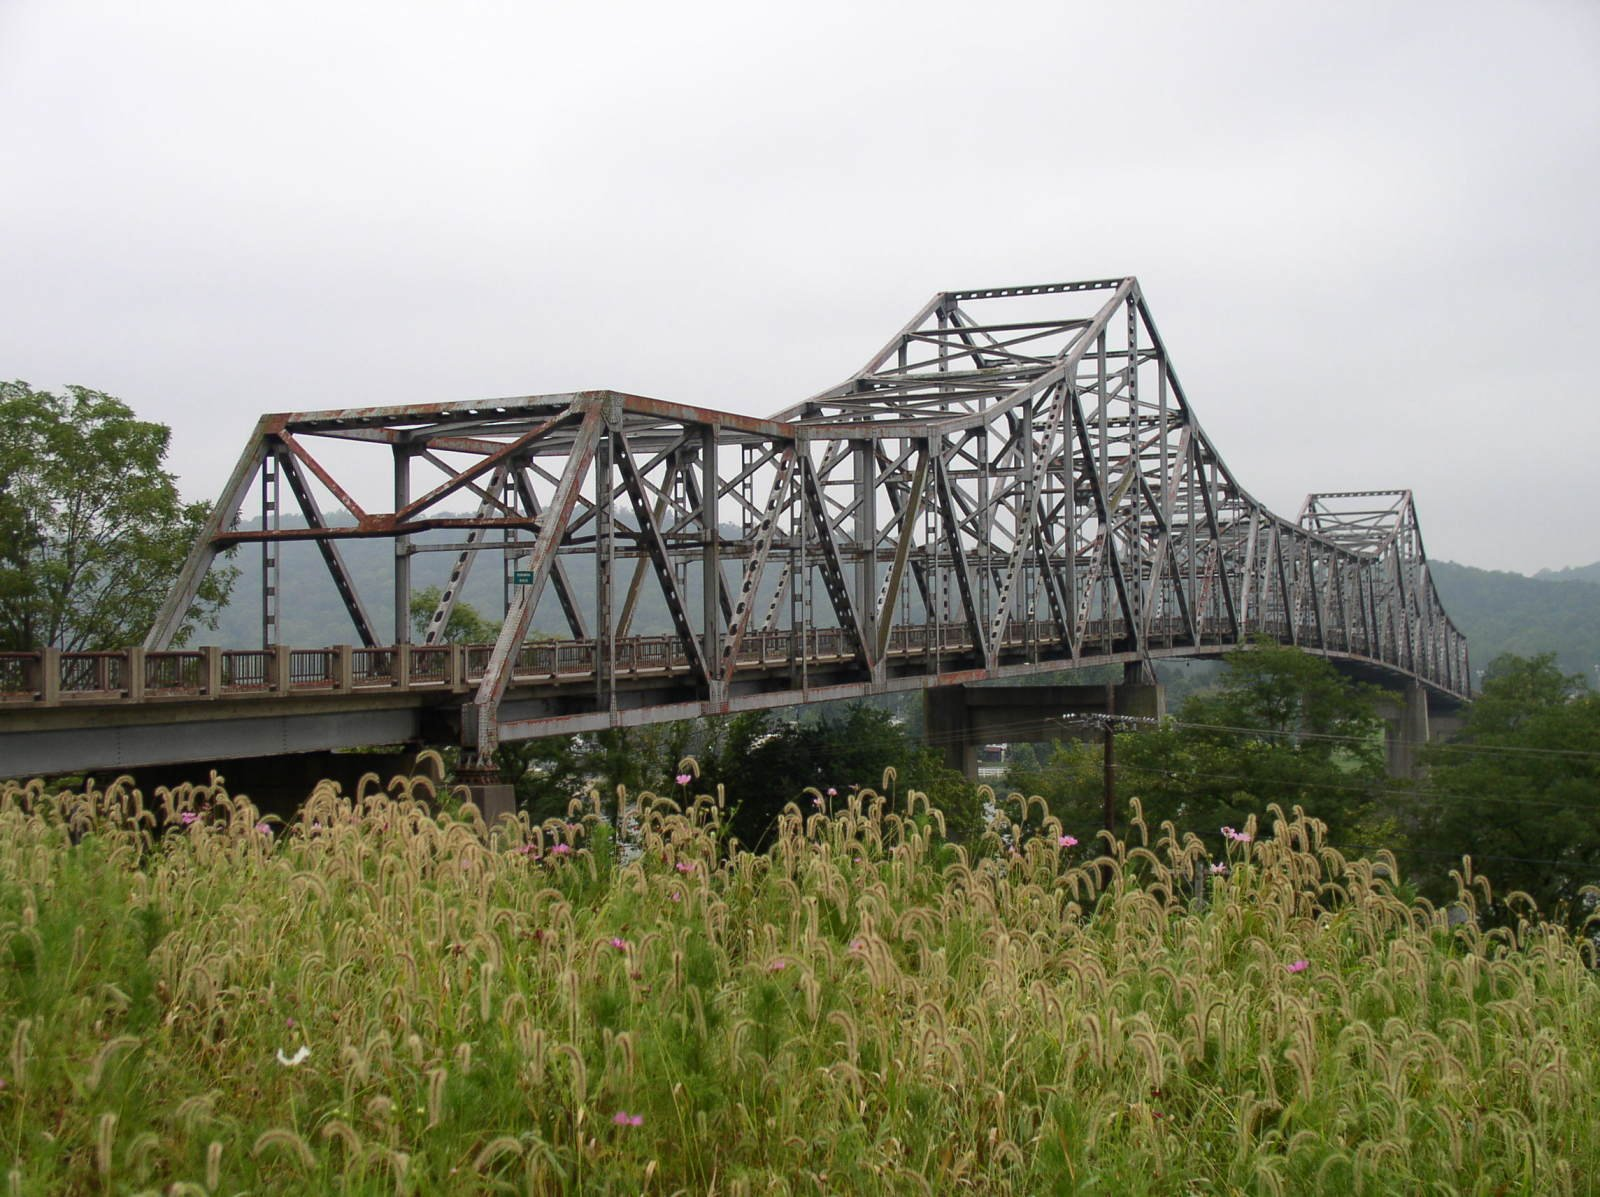 The Winfield Toll Bridge was renovated, in 2010, due the rust forming  on the bridge, and needed repairs.